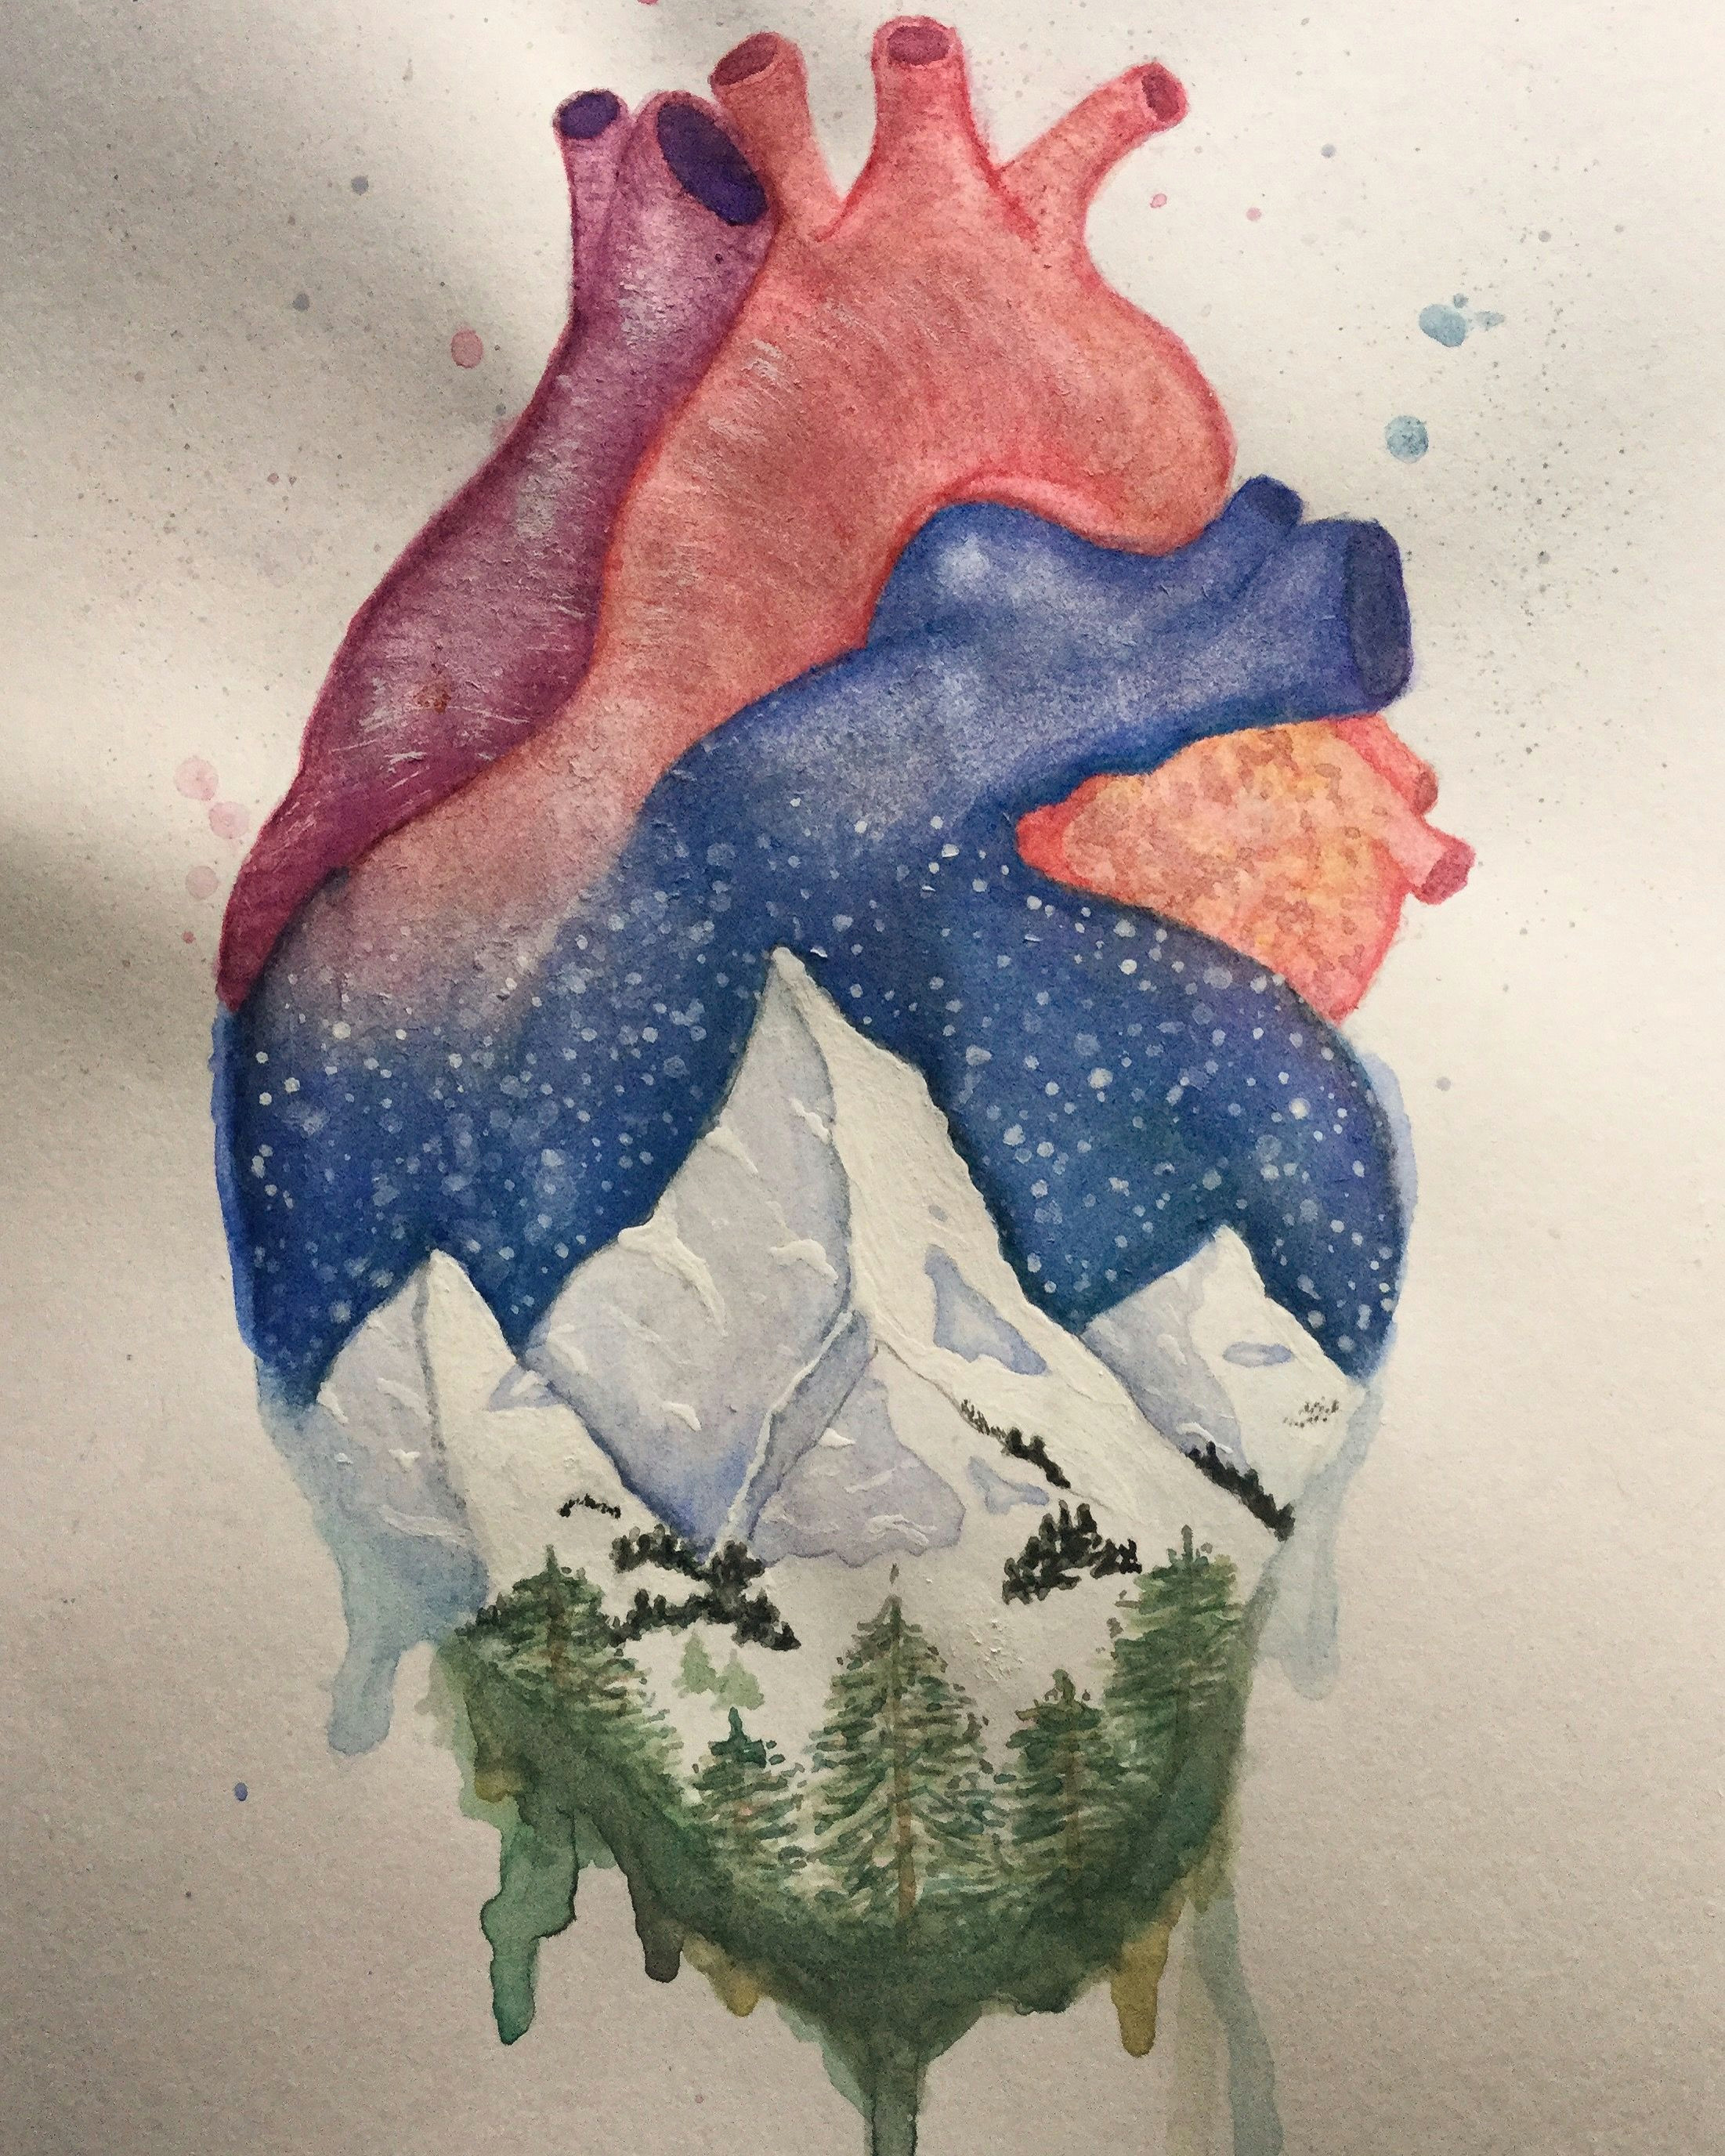 Heart Drawing Watercolor Anatomical Heart and Winter Mountain Landscape Watercolor Painting